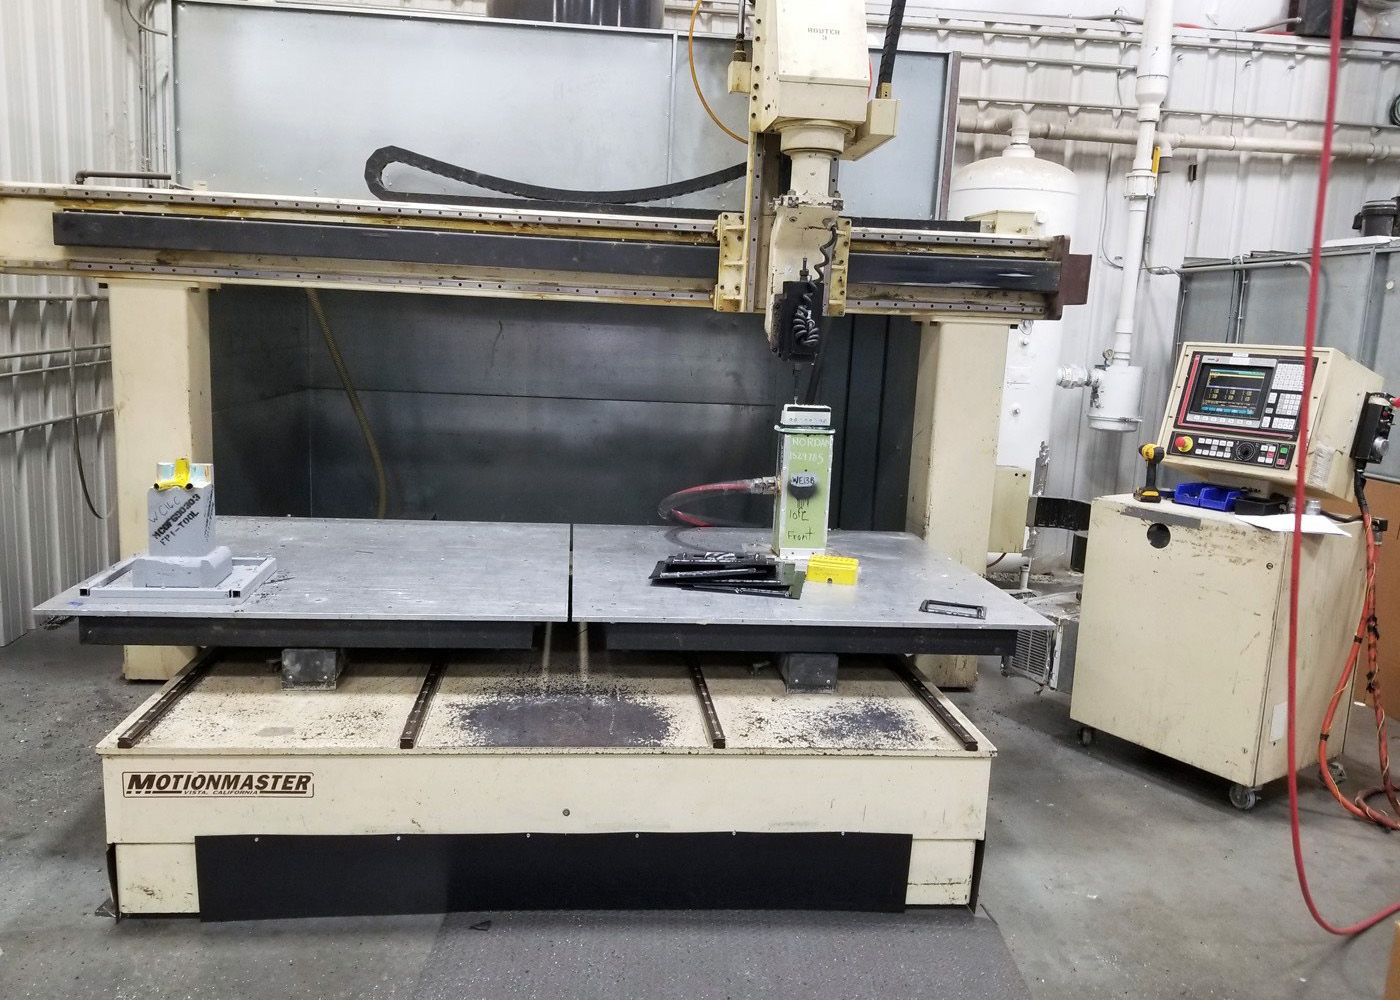 Motionmaster 5 Axis CNC Router E579